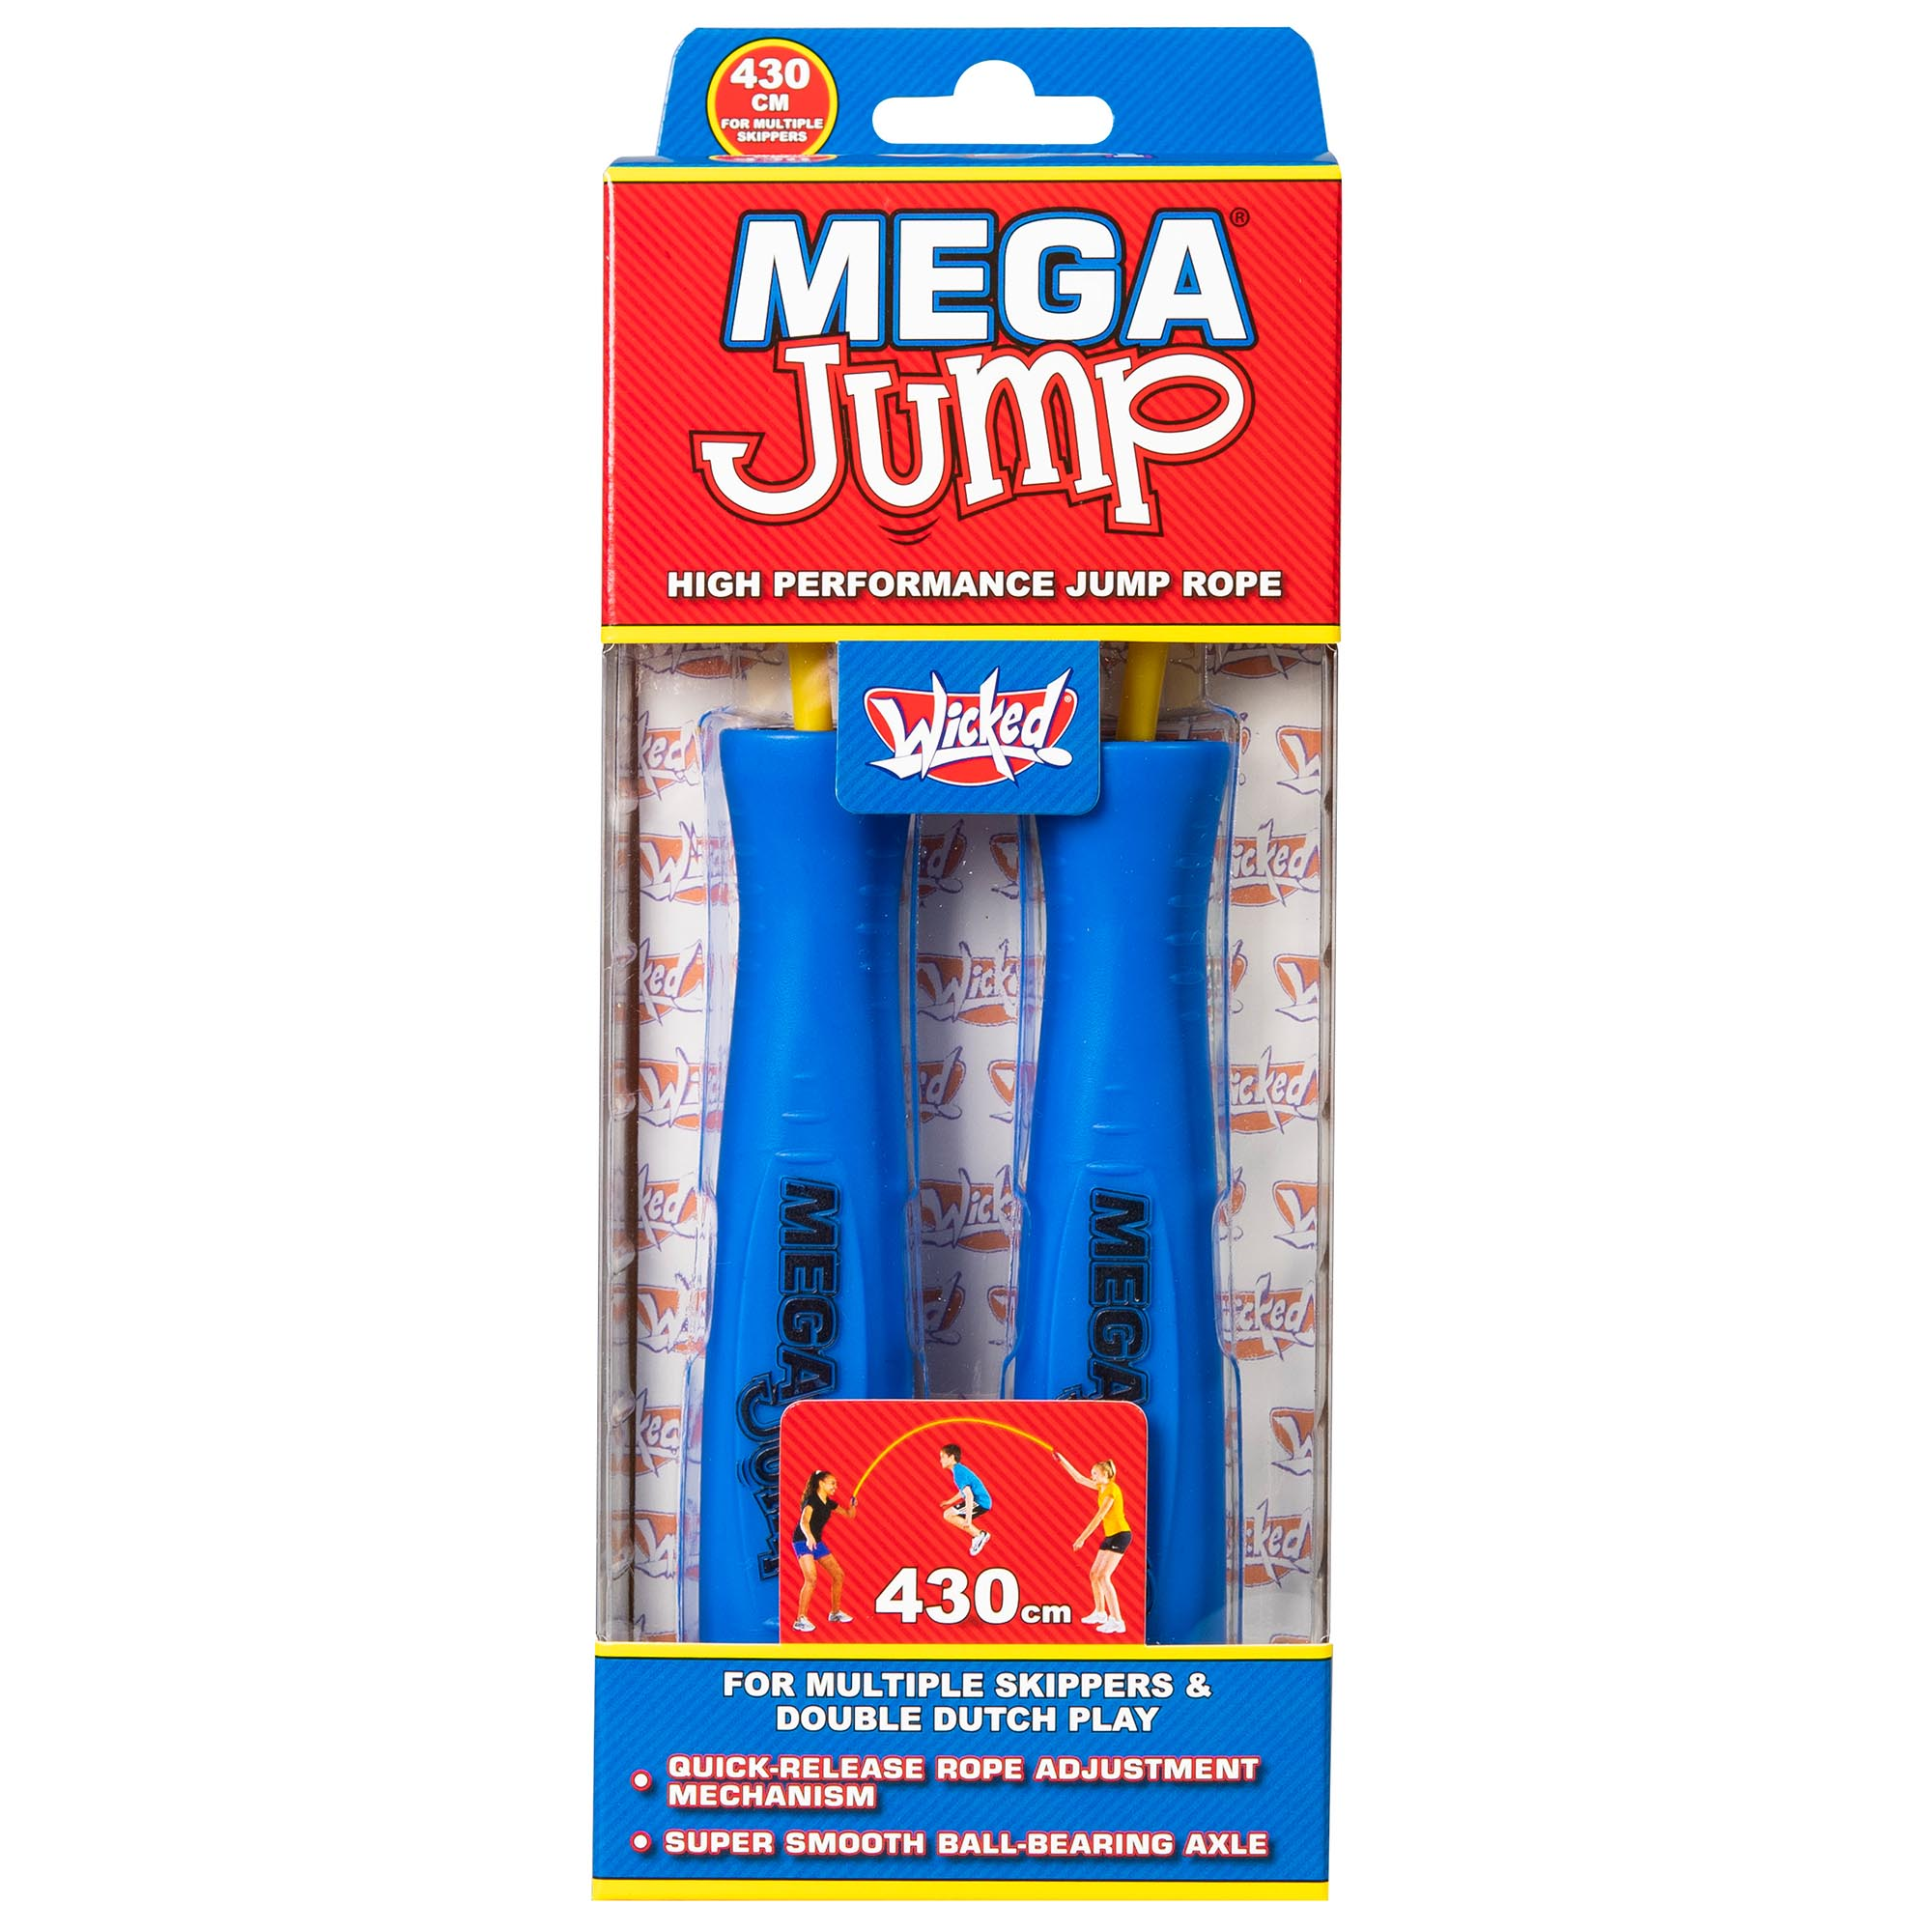 Wicked Mega Jump Double Skipping Rope - Blue